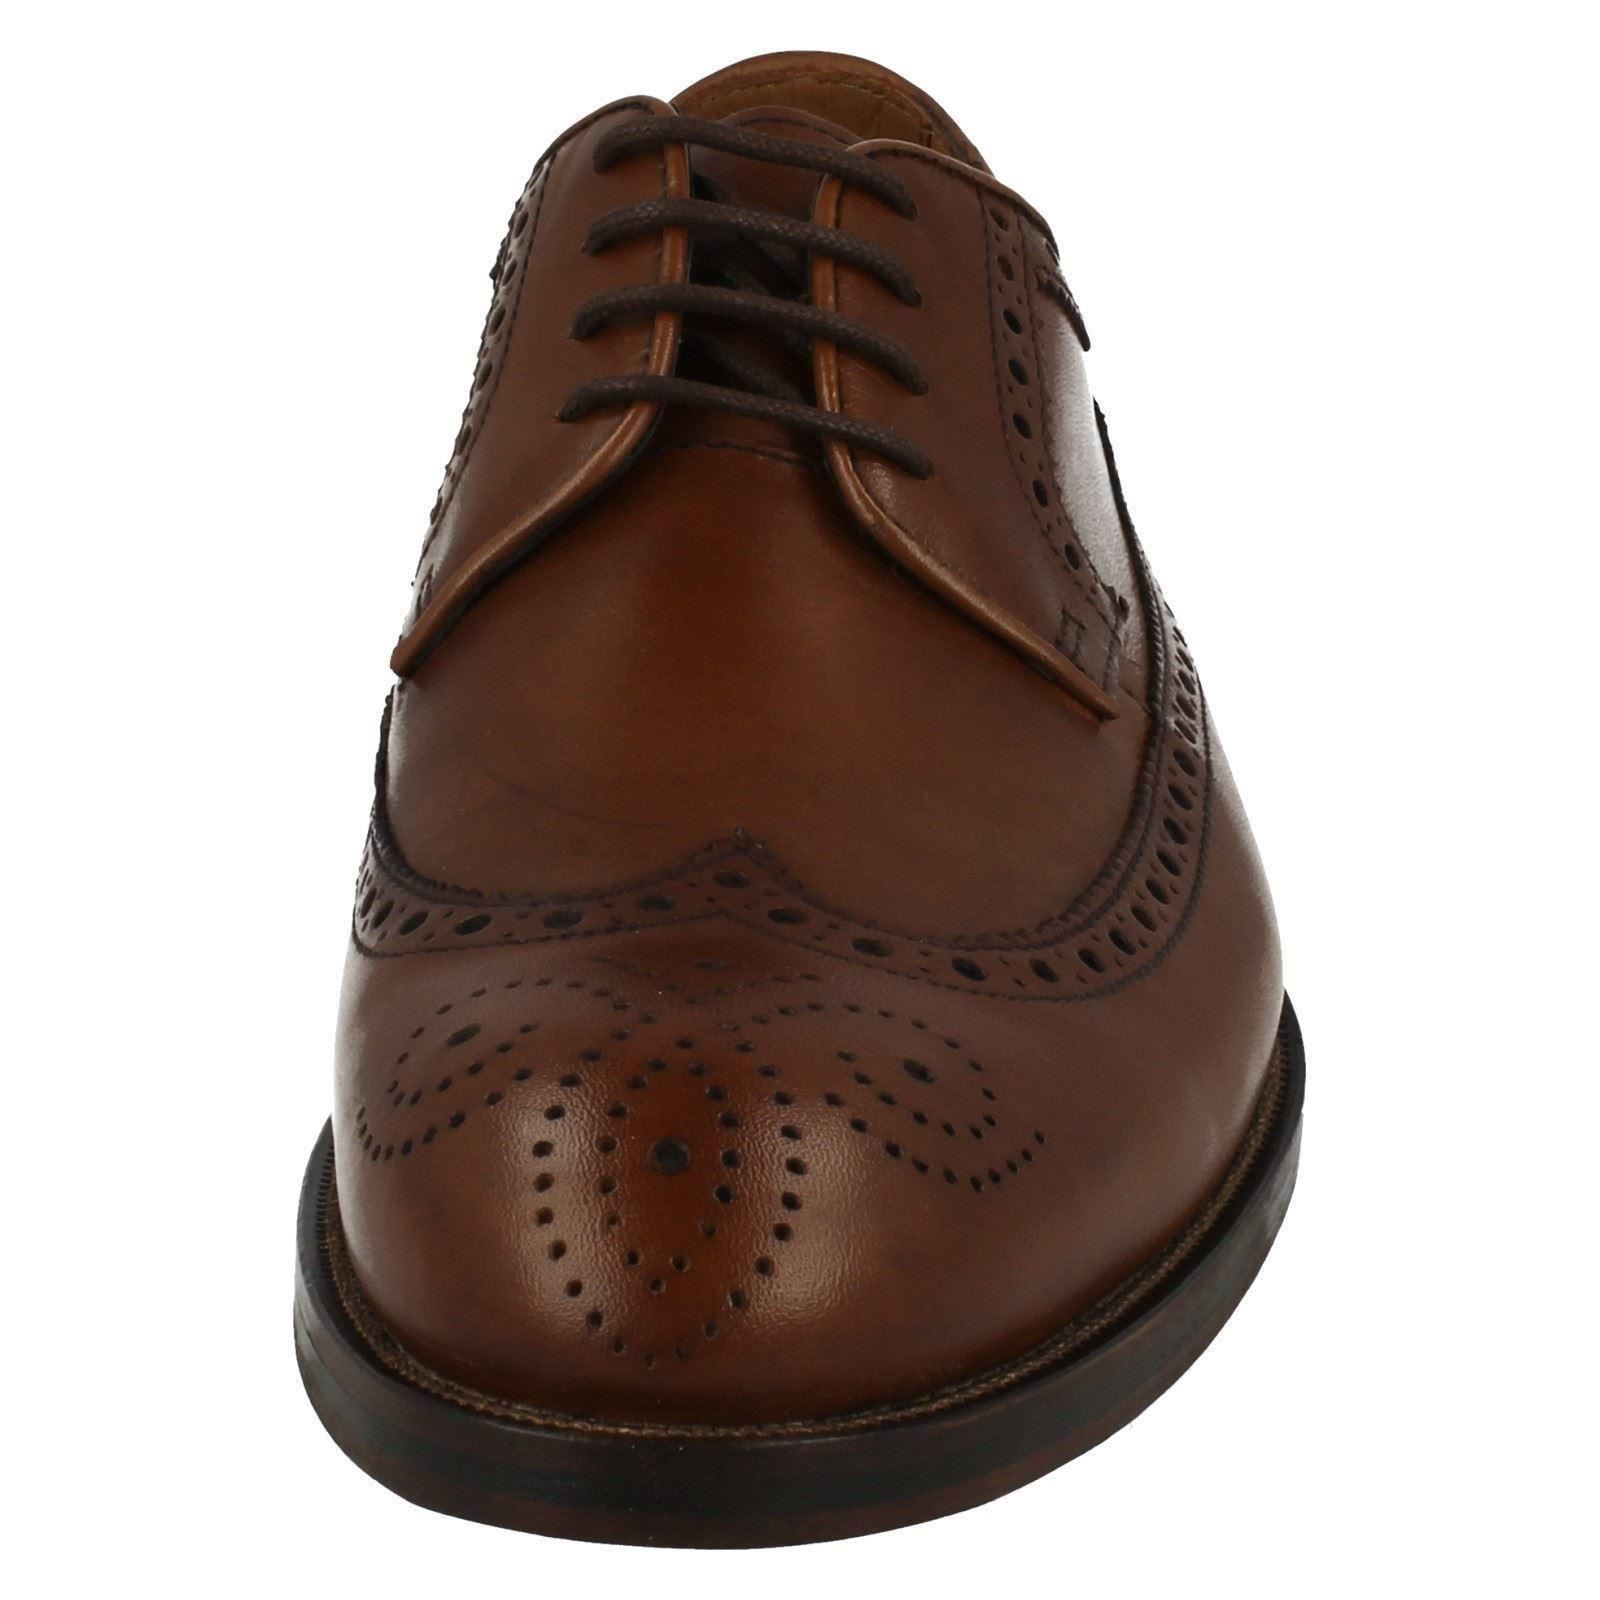 Men's Clarks Formal Brogue Lace Up Shoes The Style -  Coling Limit